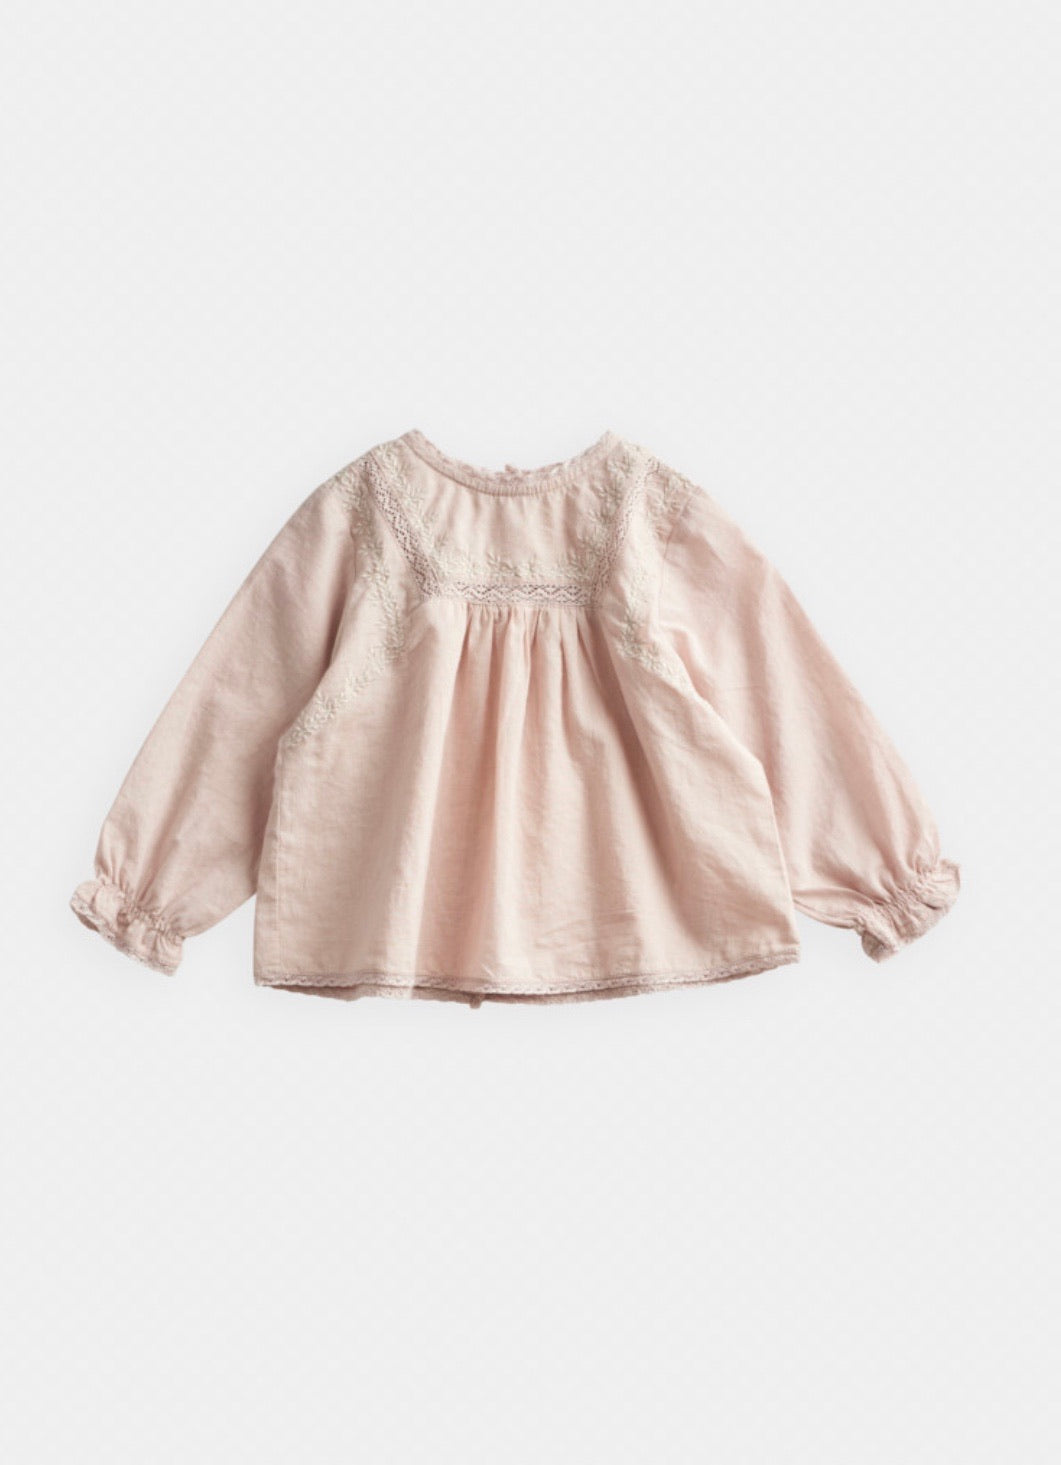 Lace and Embroidery Blouse | Beige